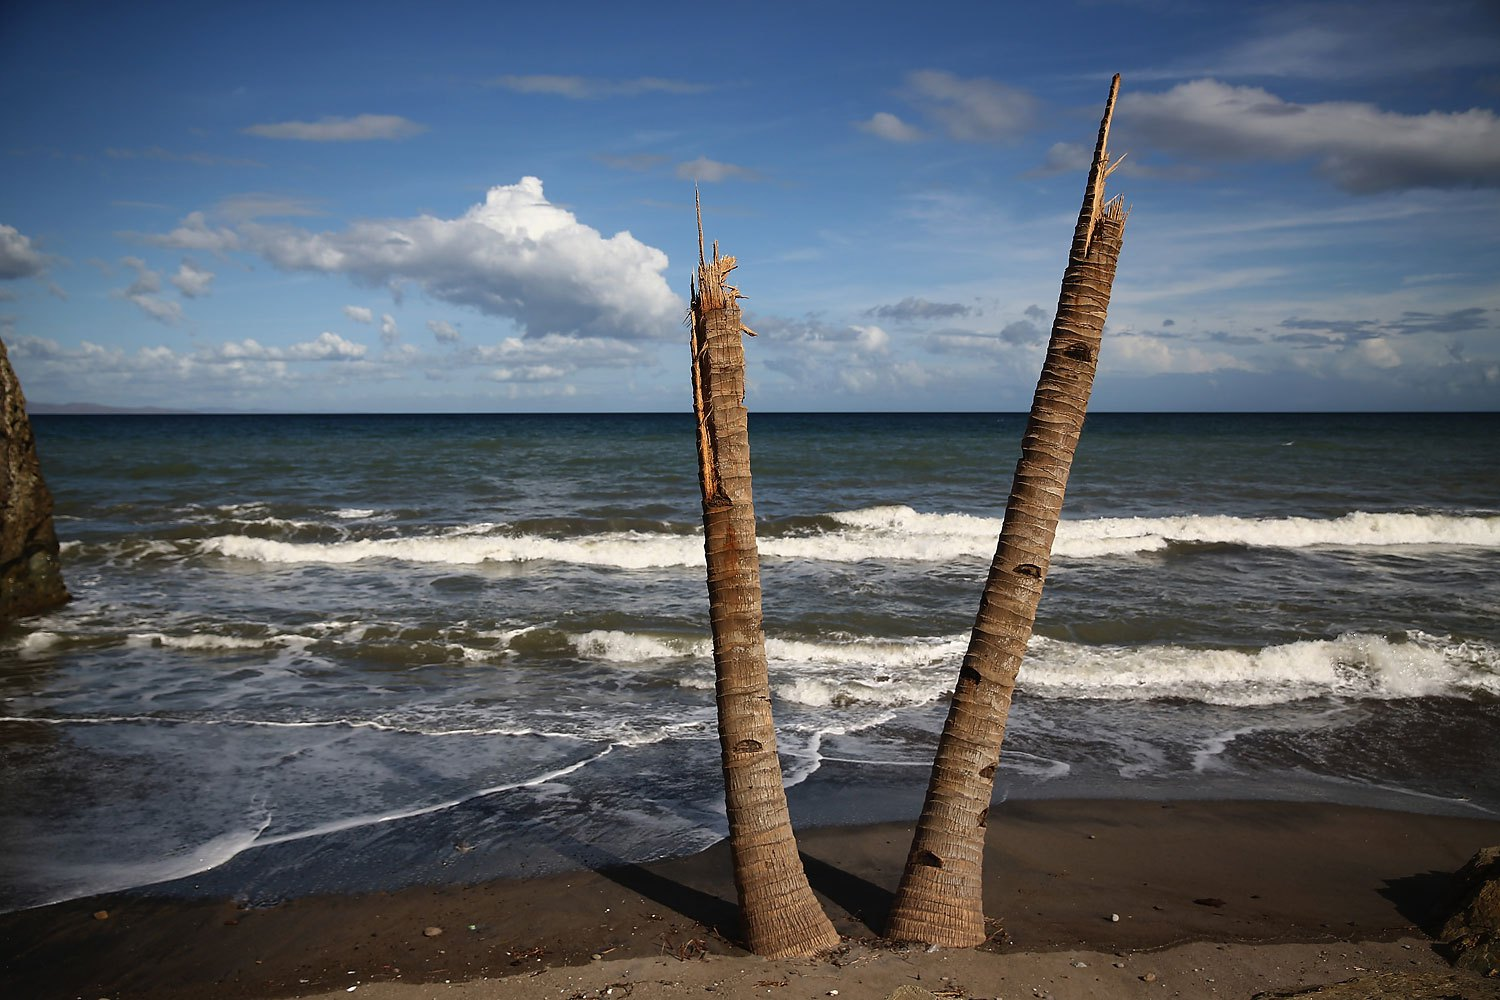 Two broken palm trees stand snapped in half on the beach near Tanauan, on November 19, 2013 in Leyte, Philippines.